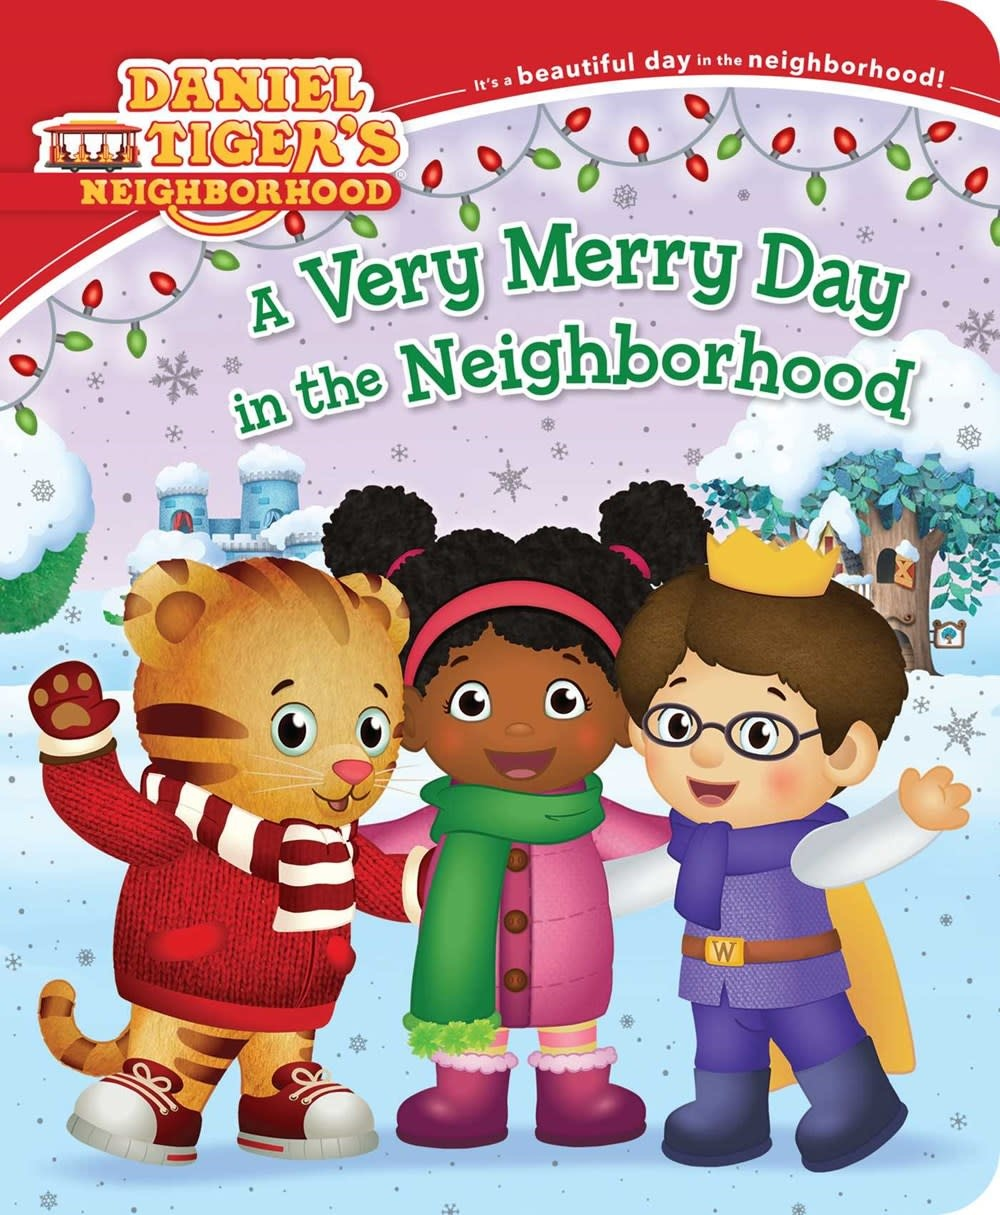 Simon Spotlight Daniel Tiger: A Very Merry Day in the Neighborhood